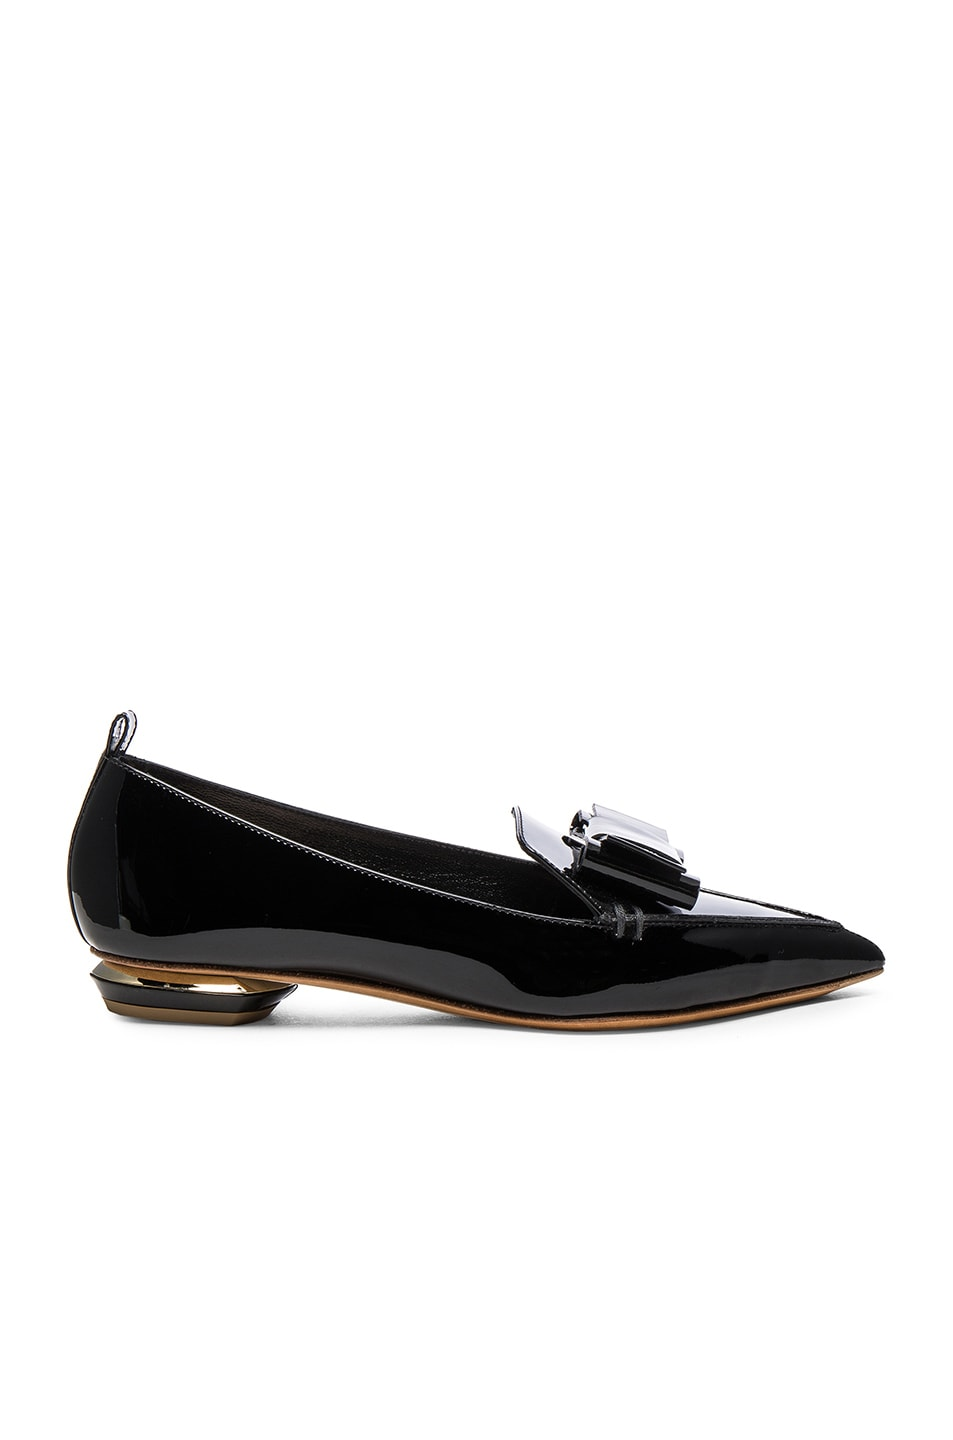 Image 1 of Nicholas Kirkwood Patent Leather Bow Beya Loafers in Black